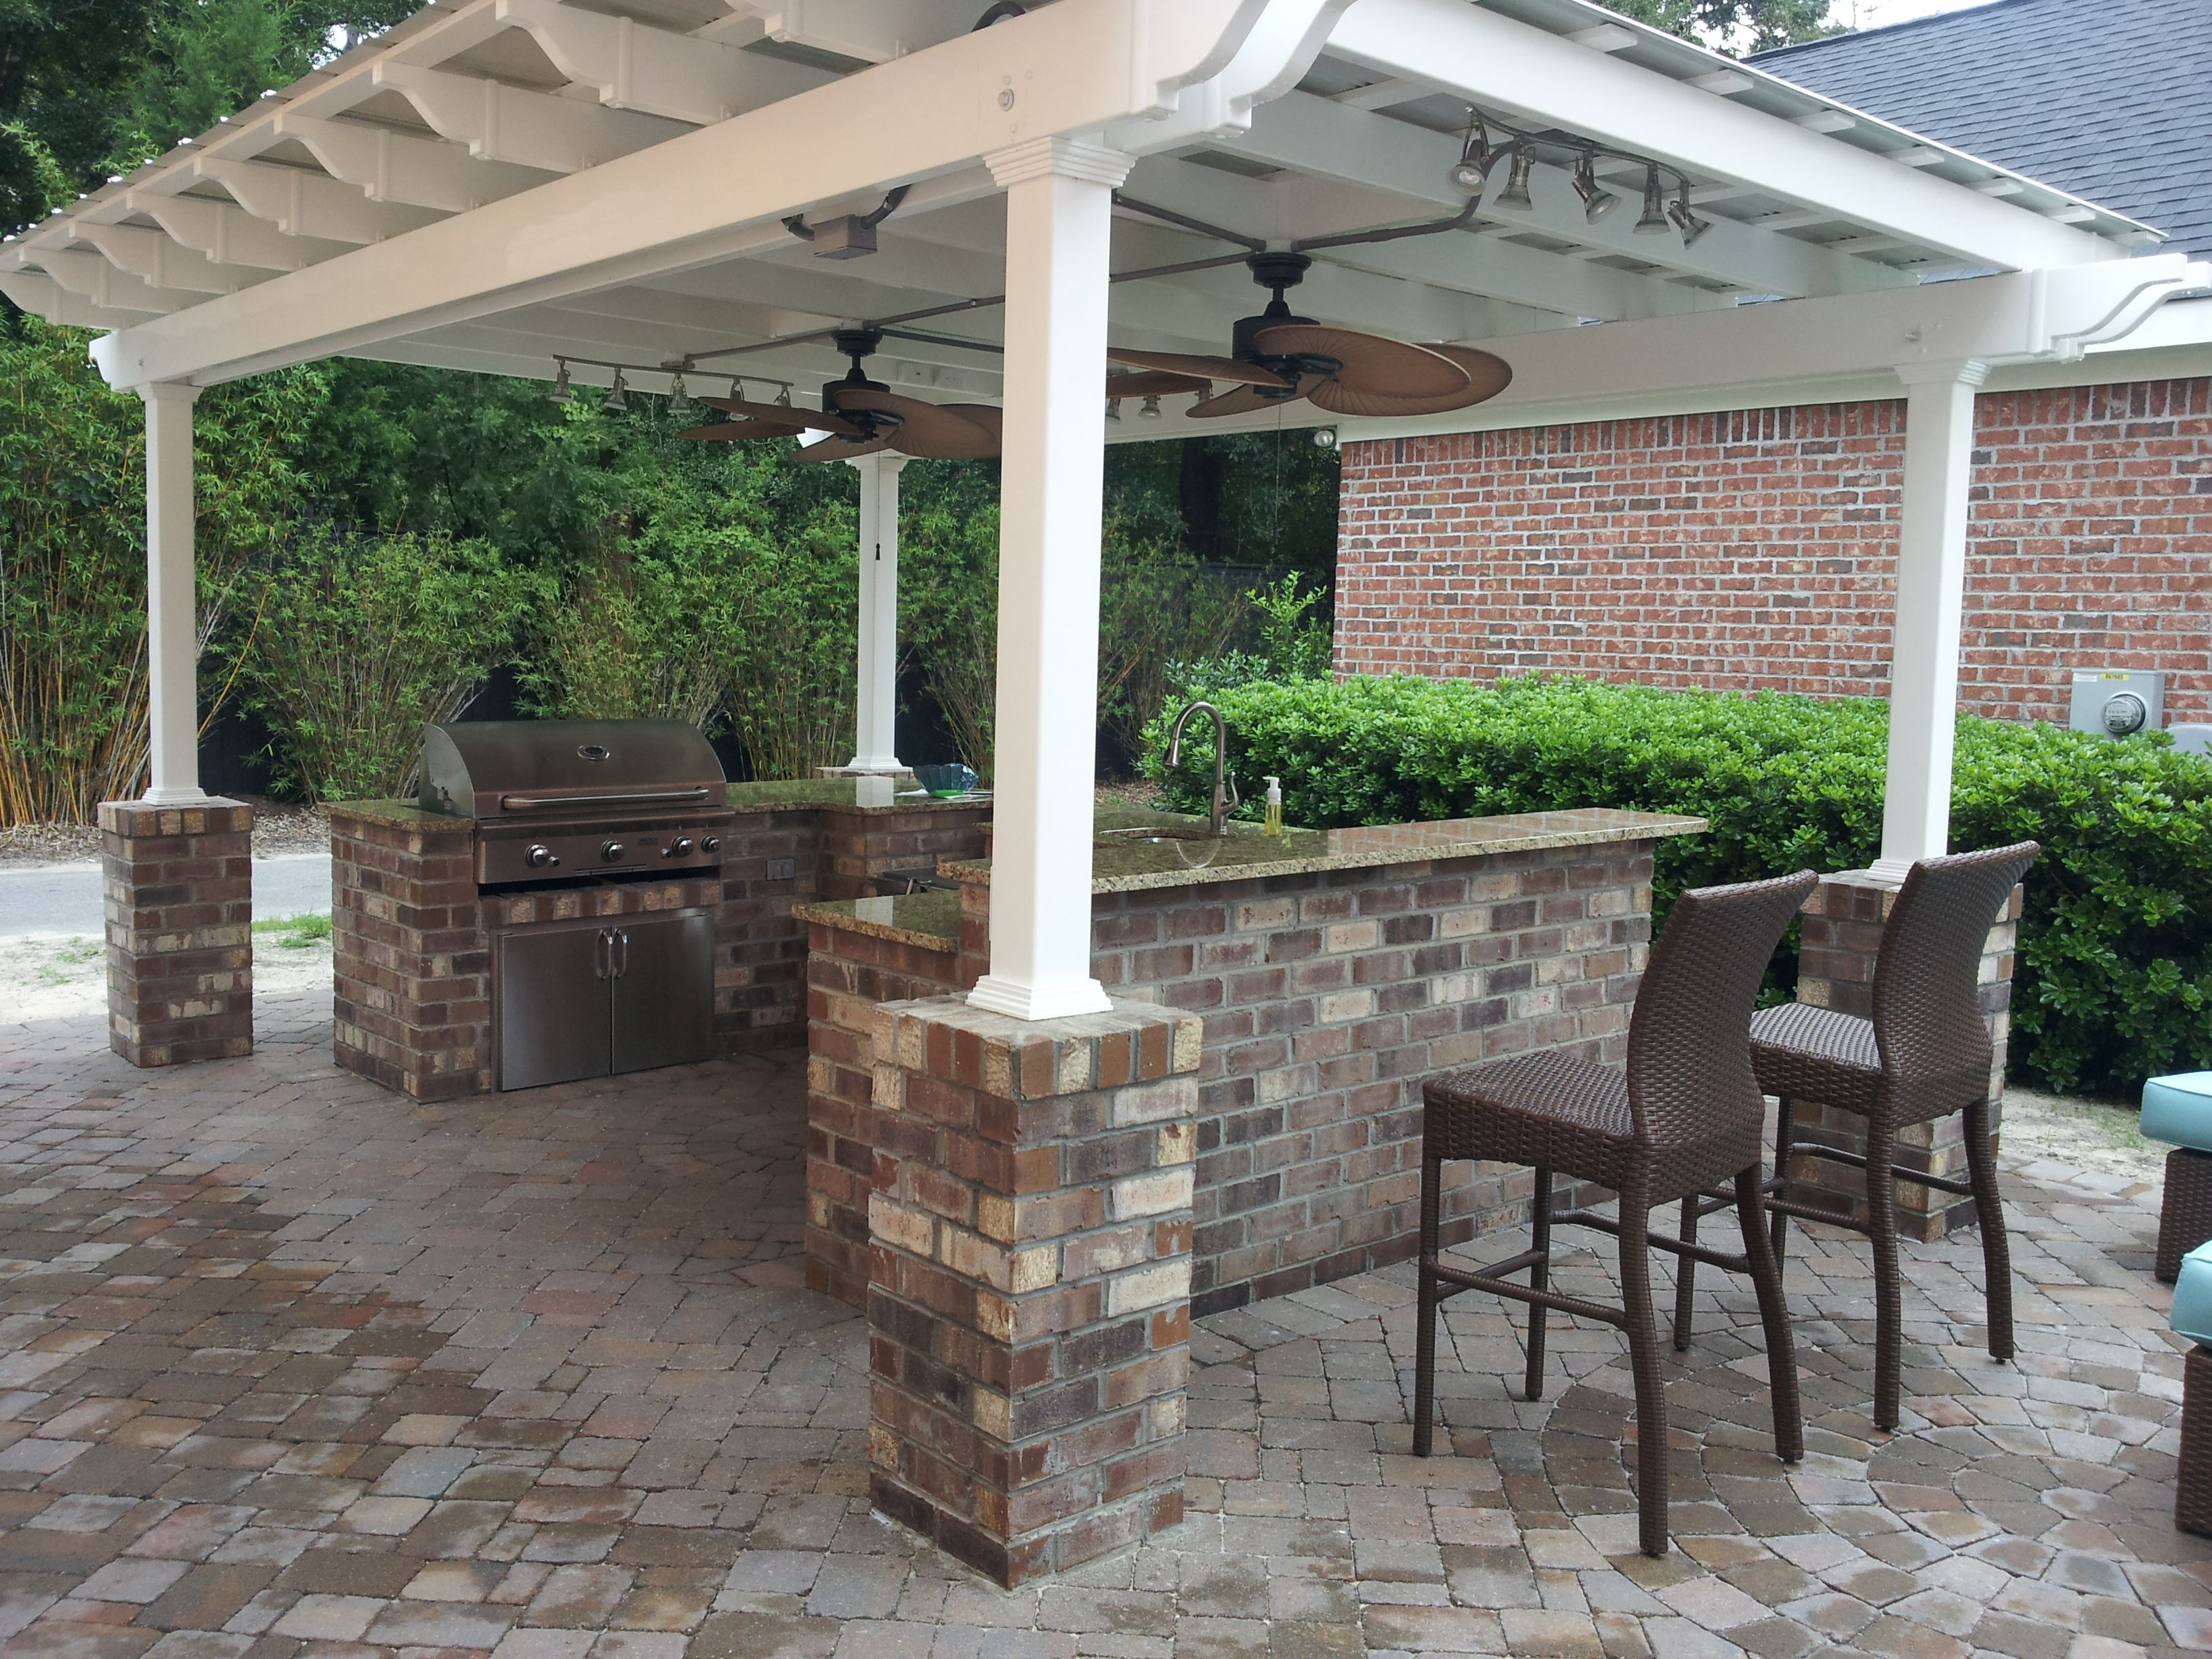 Maybe You Would Like An Outdoor Patio That Is Focused On Having Barbecue Parties With Your Families And Friends During The W In 2020 With Images Vinyl Pergola Pergola Cost Pergola